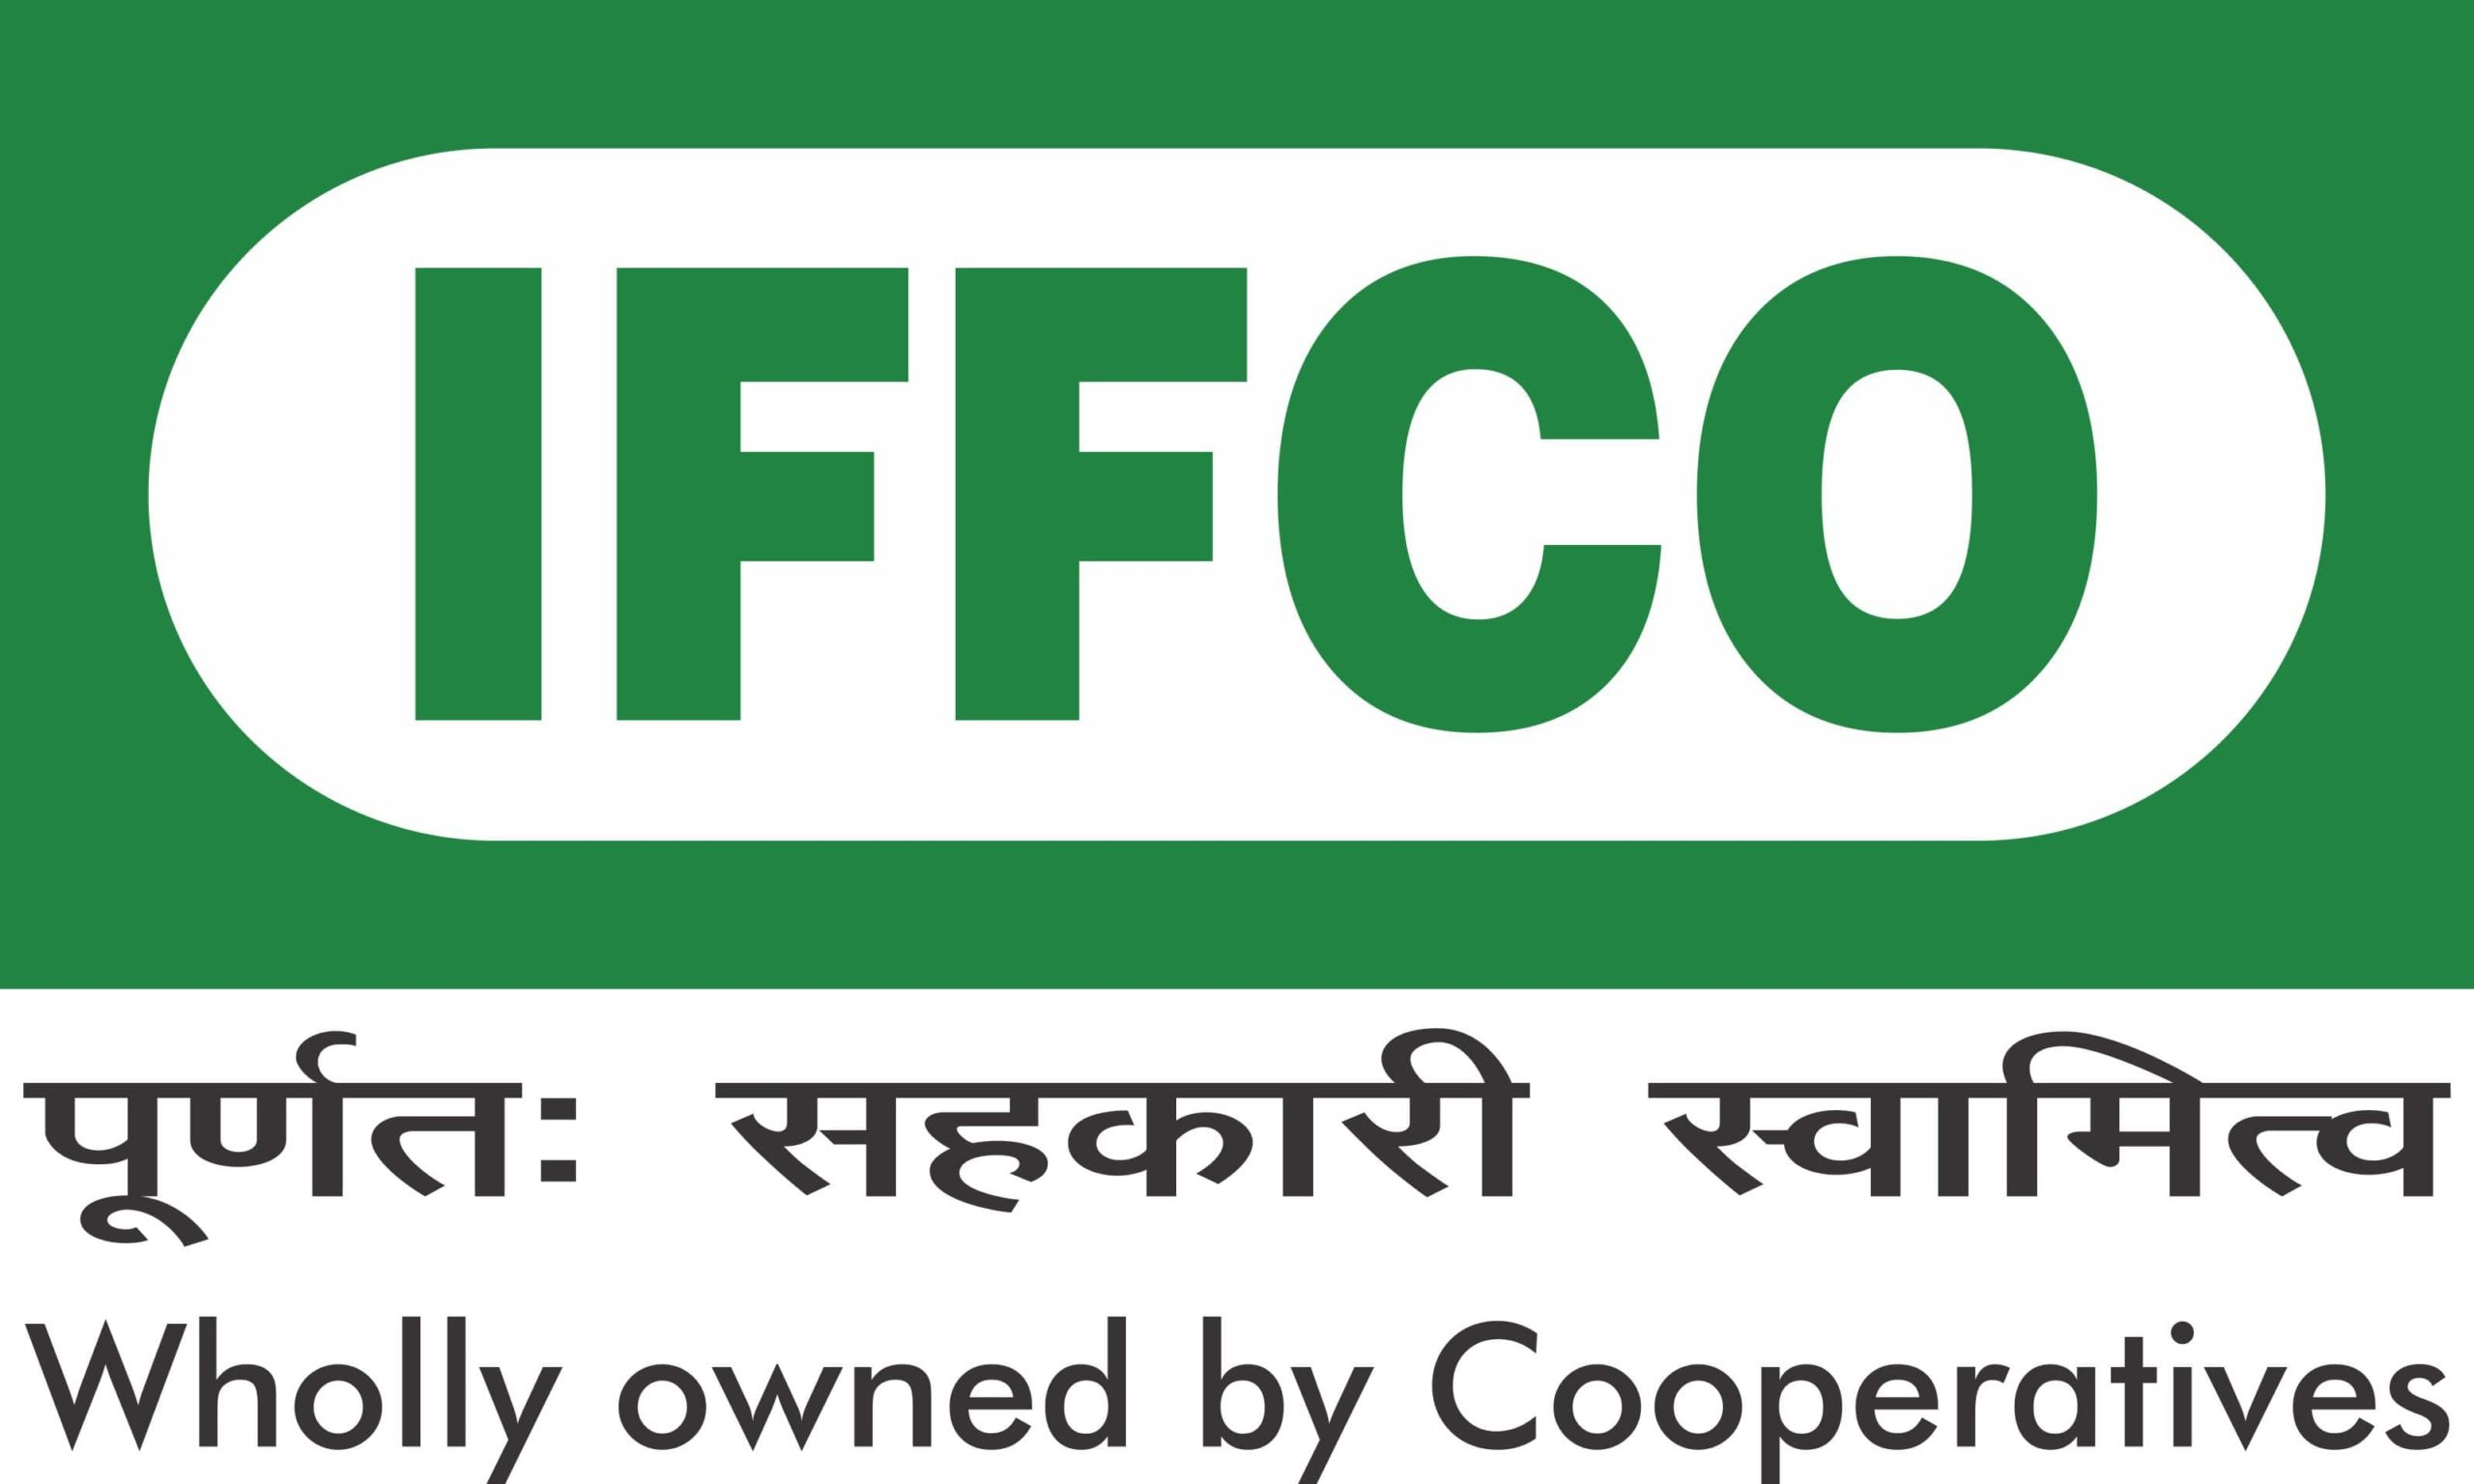 IFFCO Limited